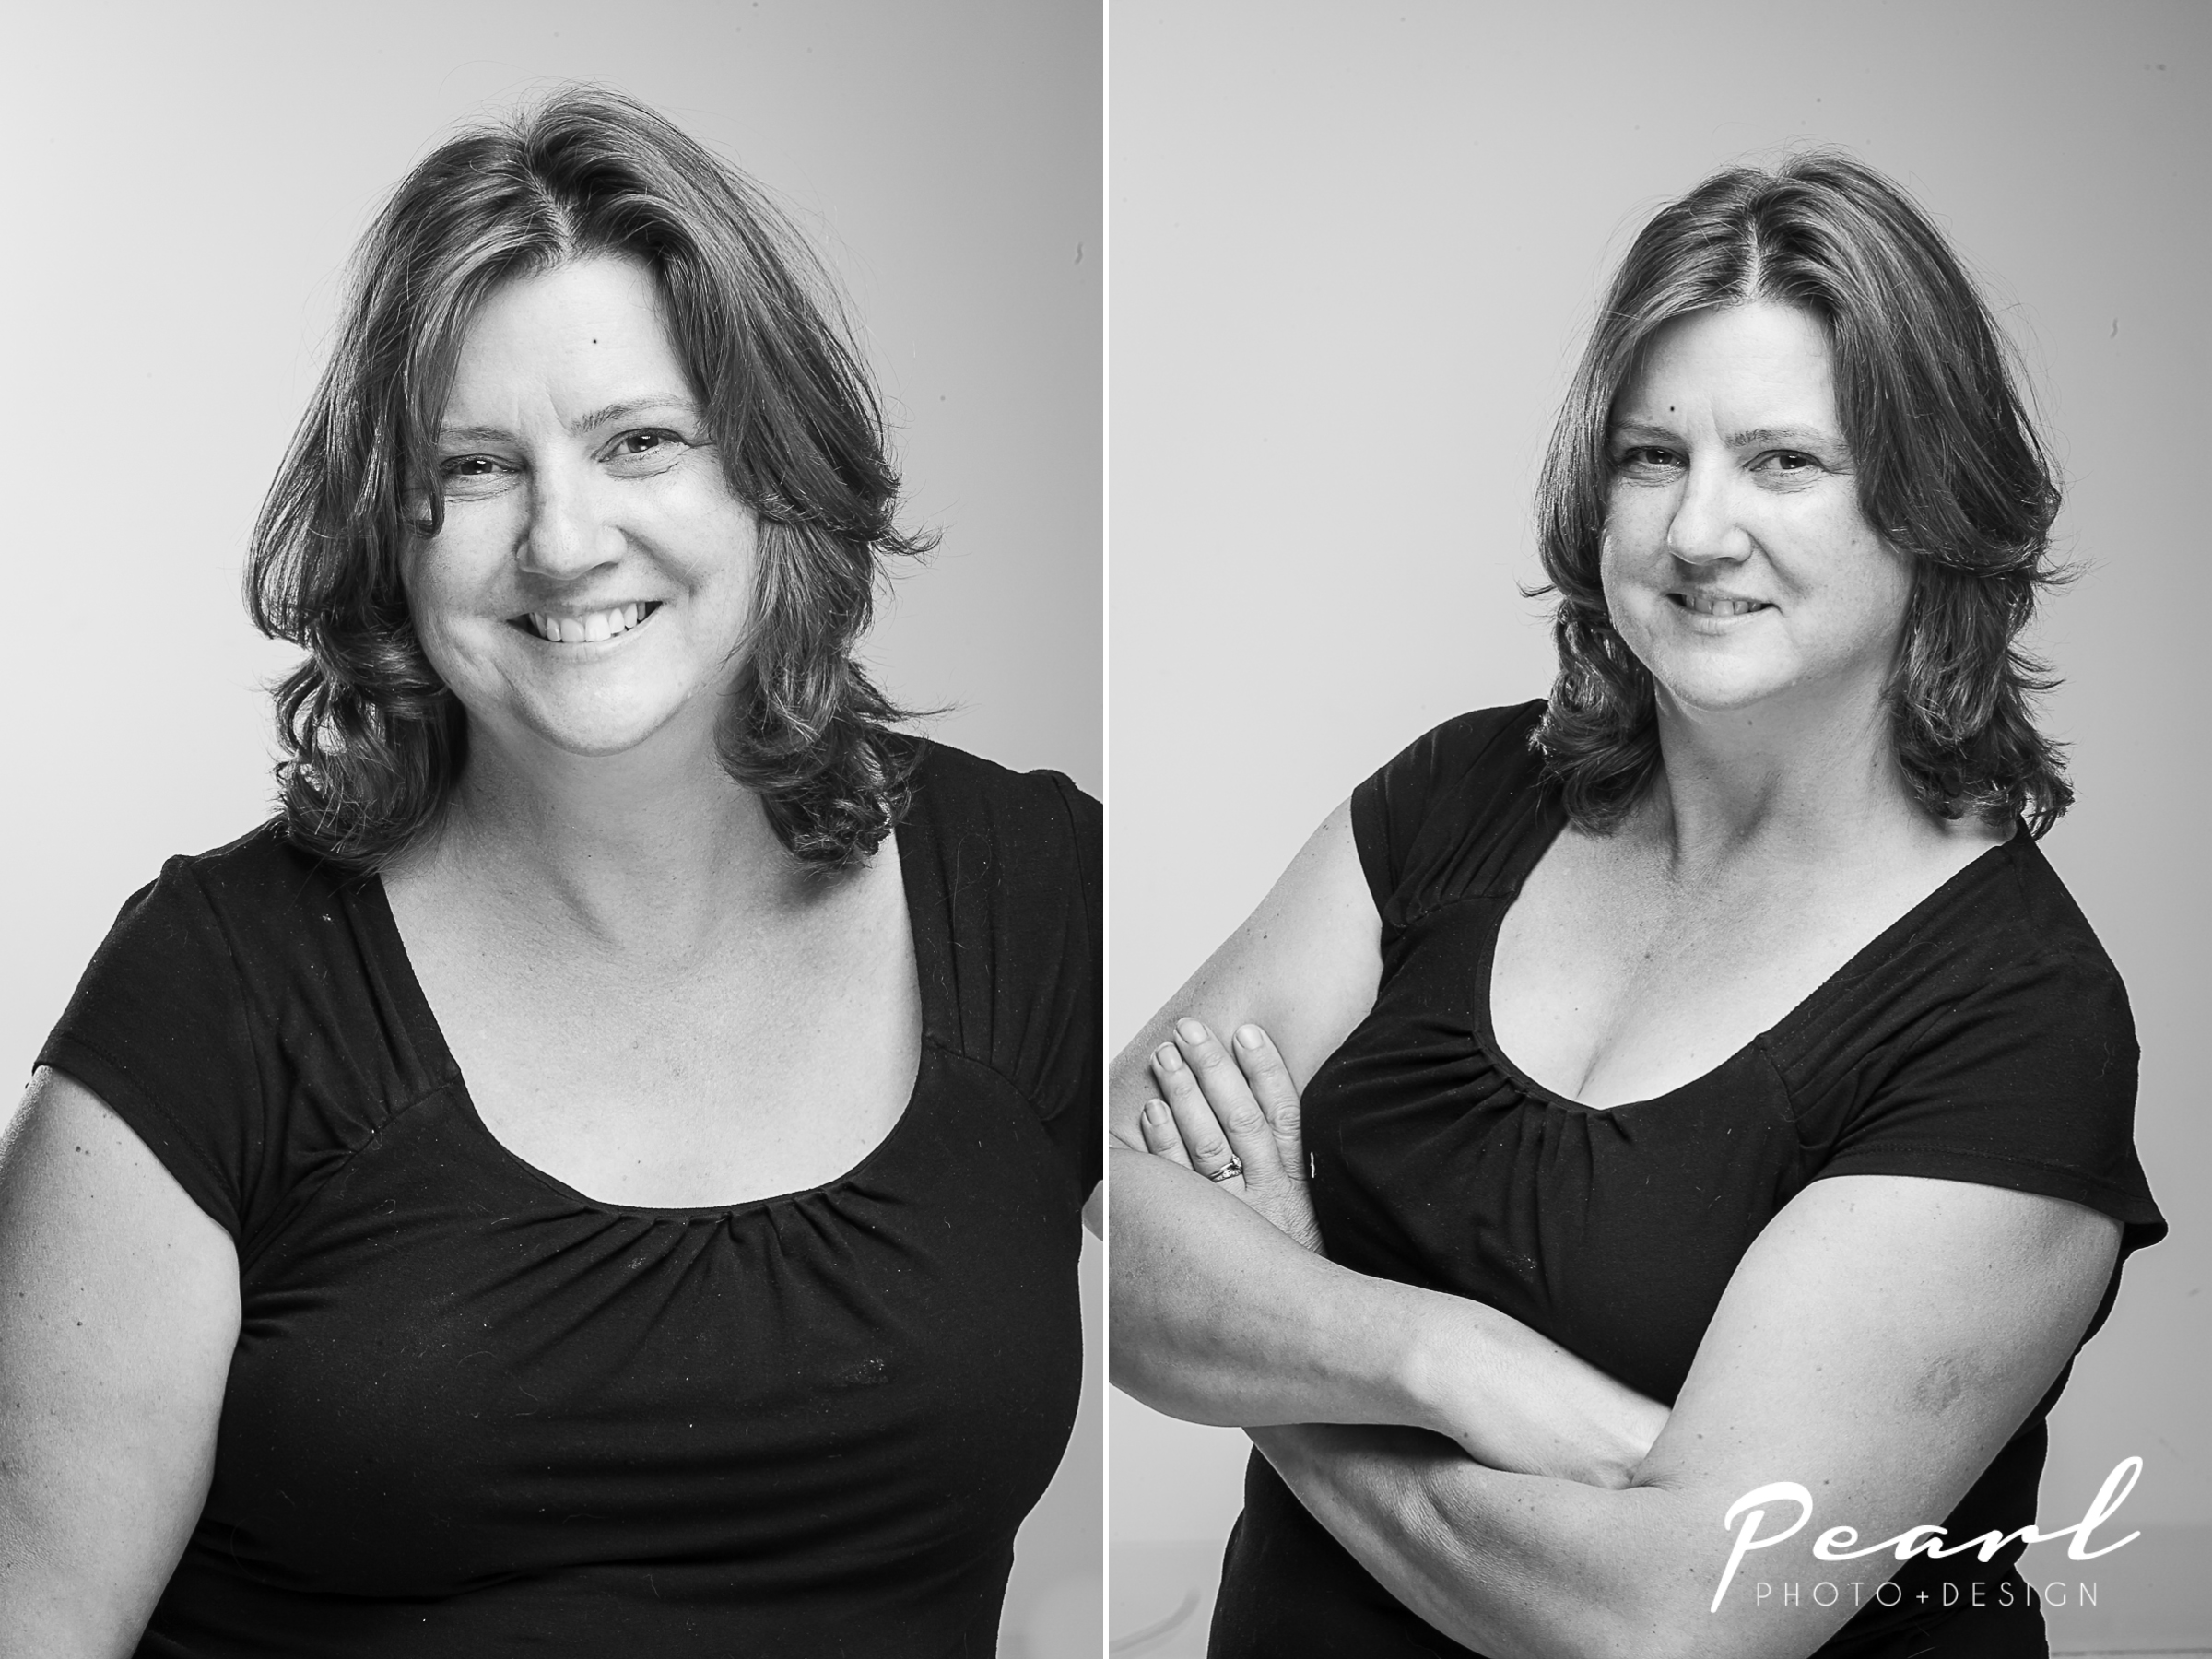 Pearl Photo & Design Portrait Photographer